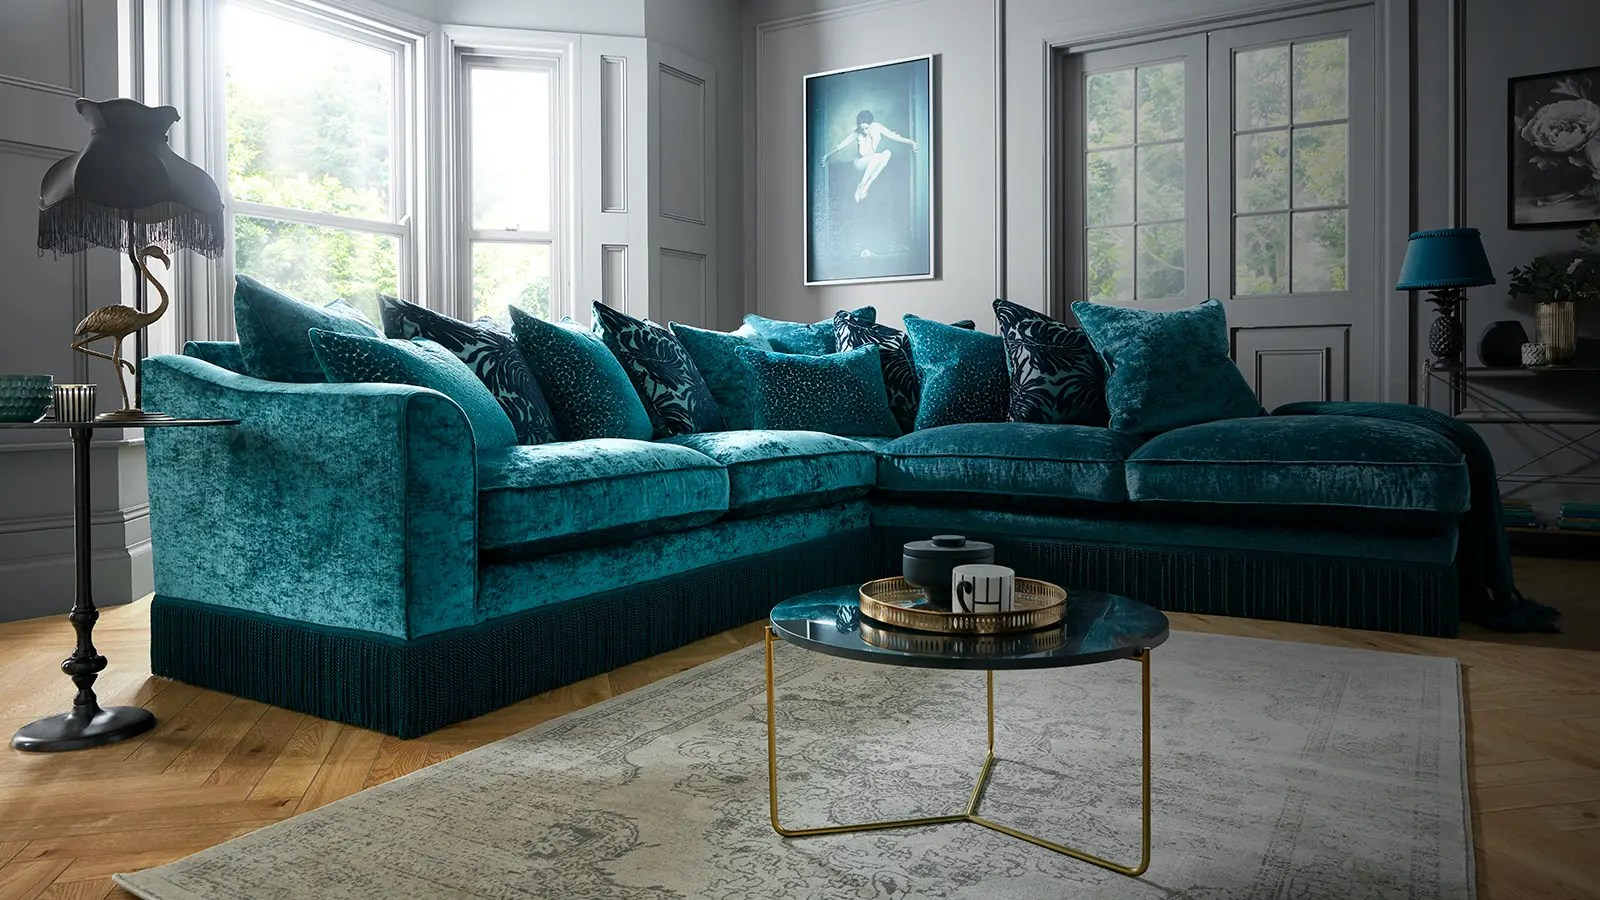 Sofa Outlet Cheshire Sofology Sofas Corner Sofas Sofa Beds Chairs Always Low Prices